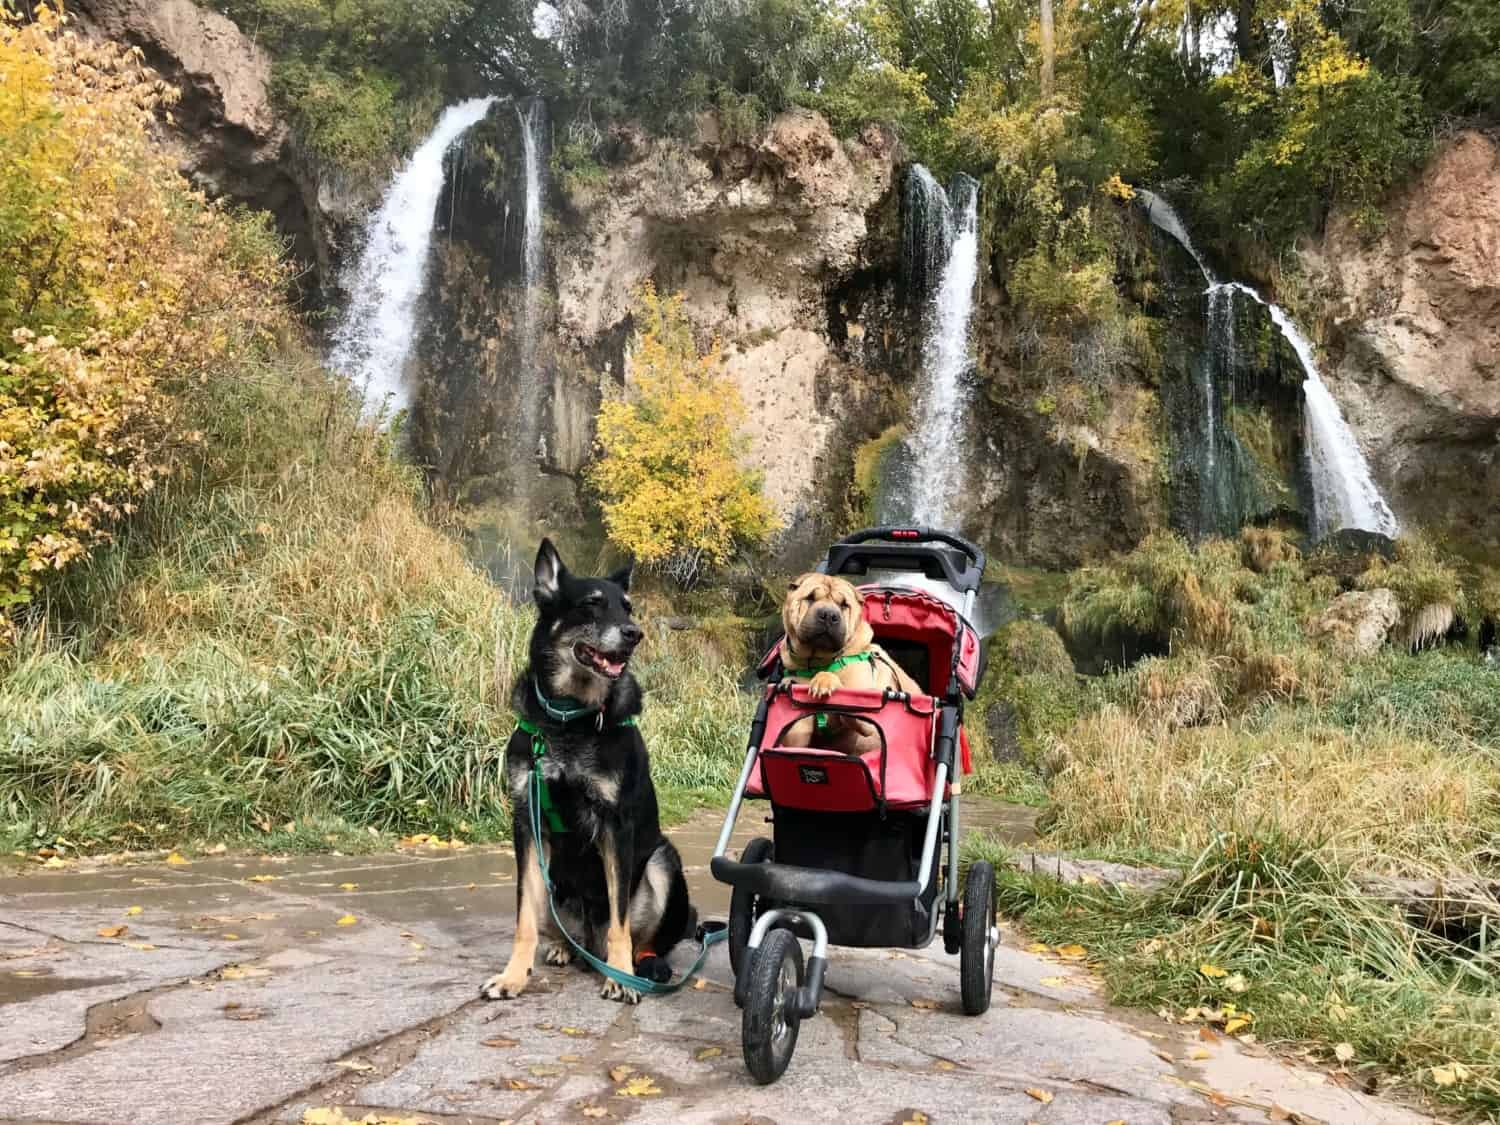 Buster and Ty, the GoPetFriendly.com dogs, on a pet friendly trail with waterfalls in the background